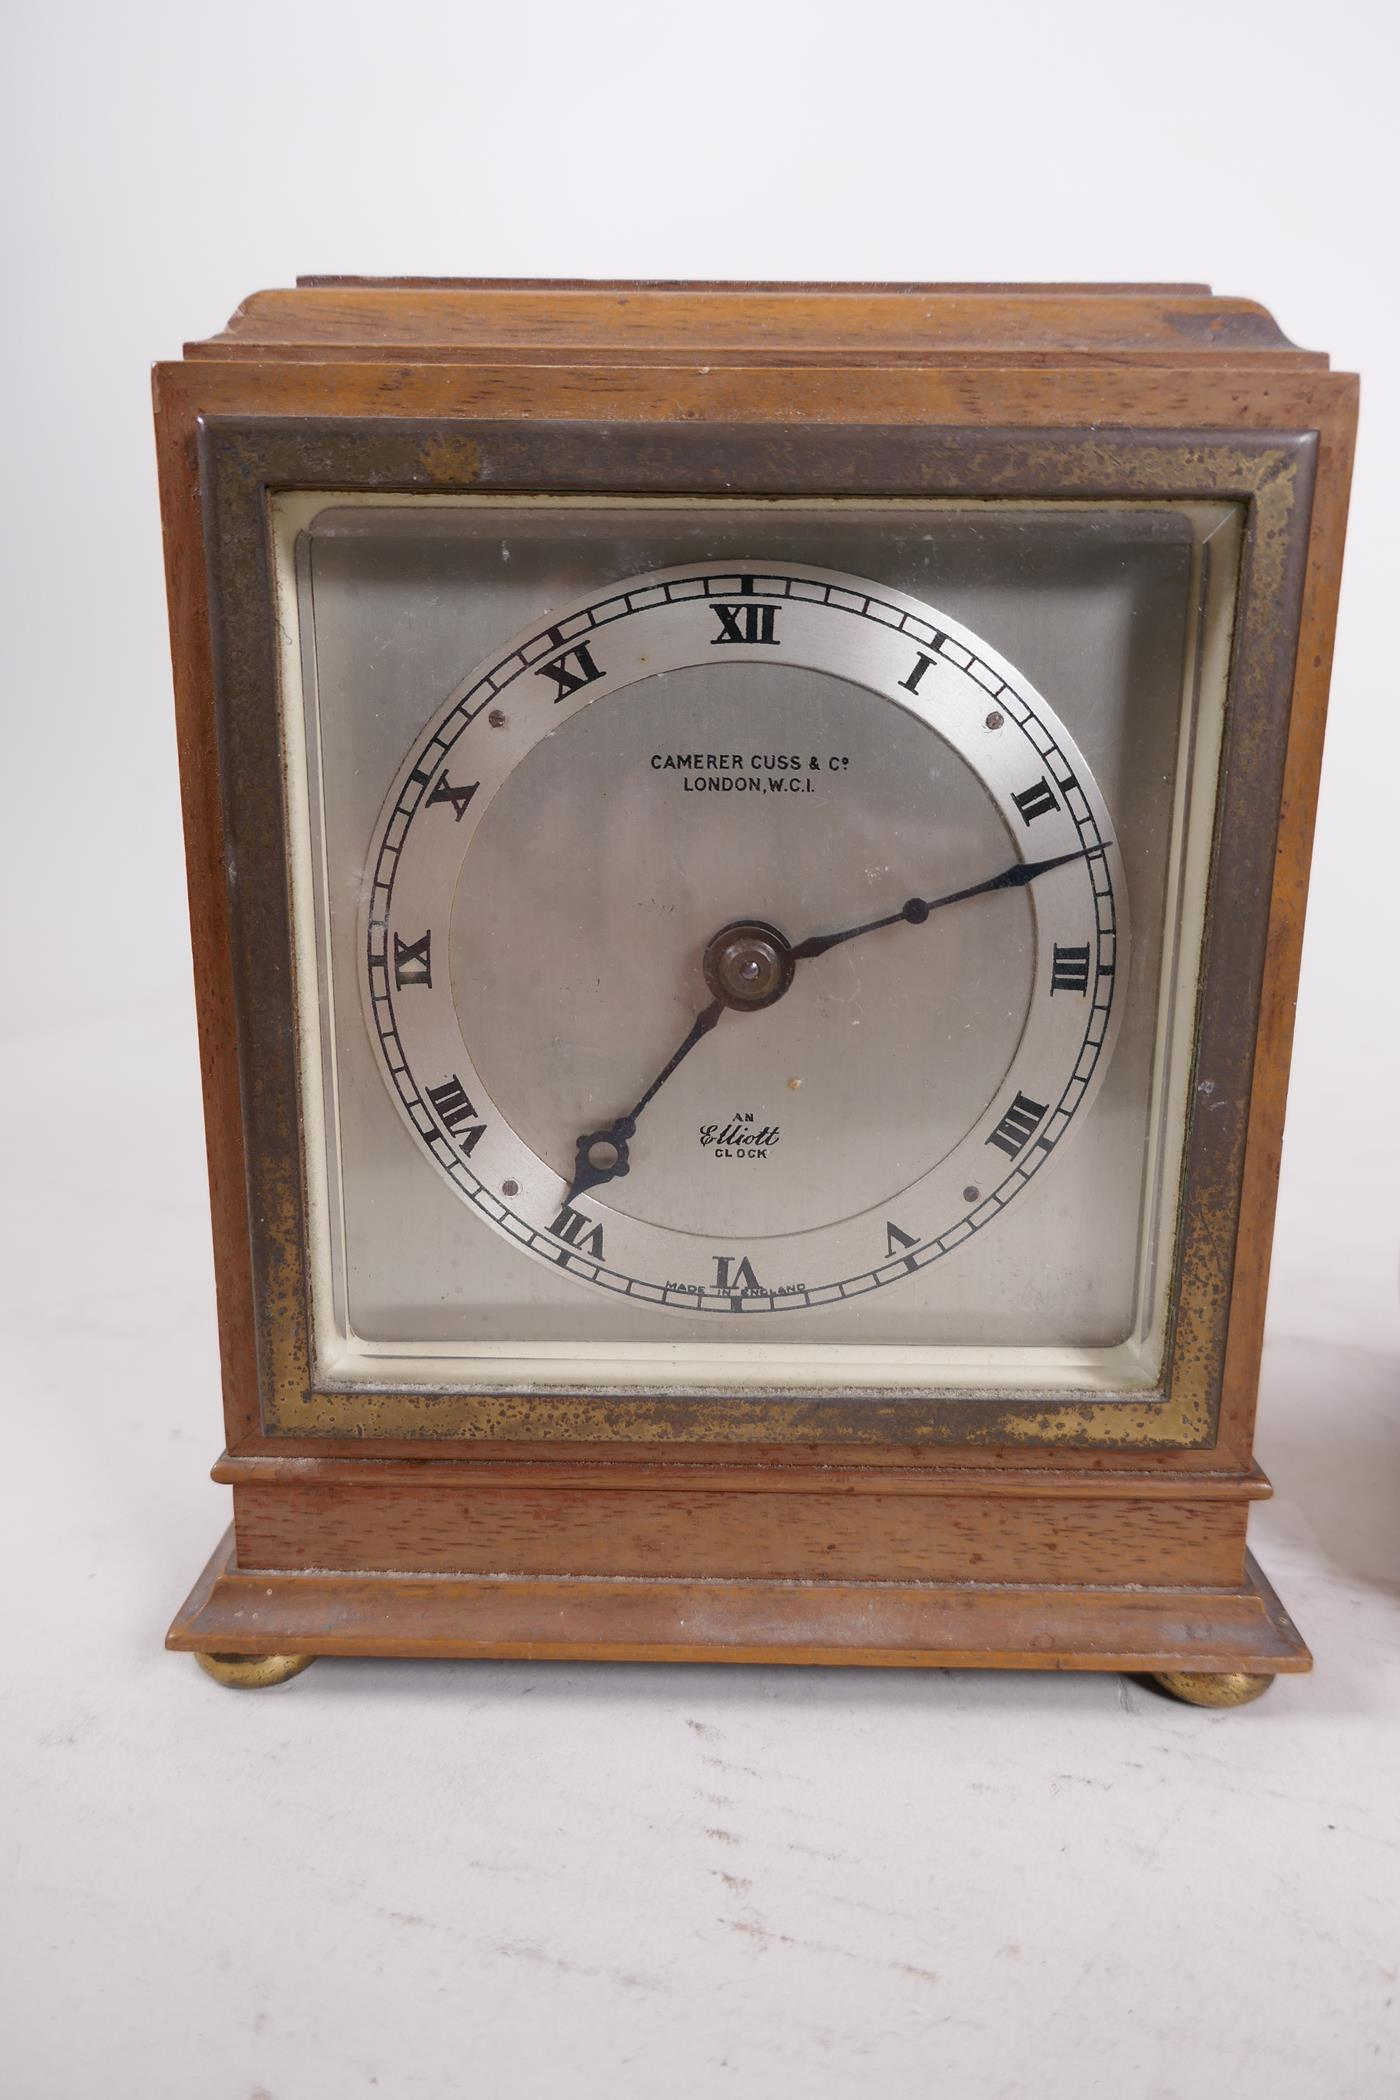 A Carrera Cuss walnut cased mantel clock, the silvered dial and chapter ring with Roman numerals and - Image 2 of 4